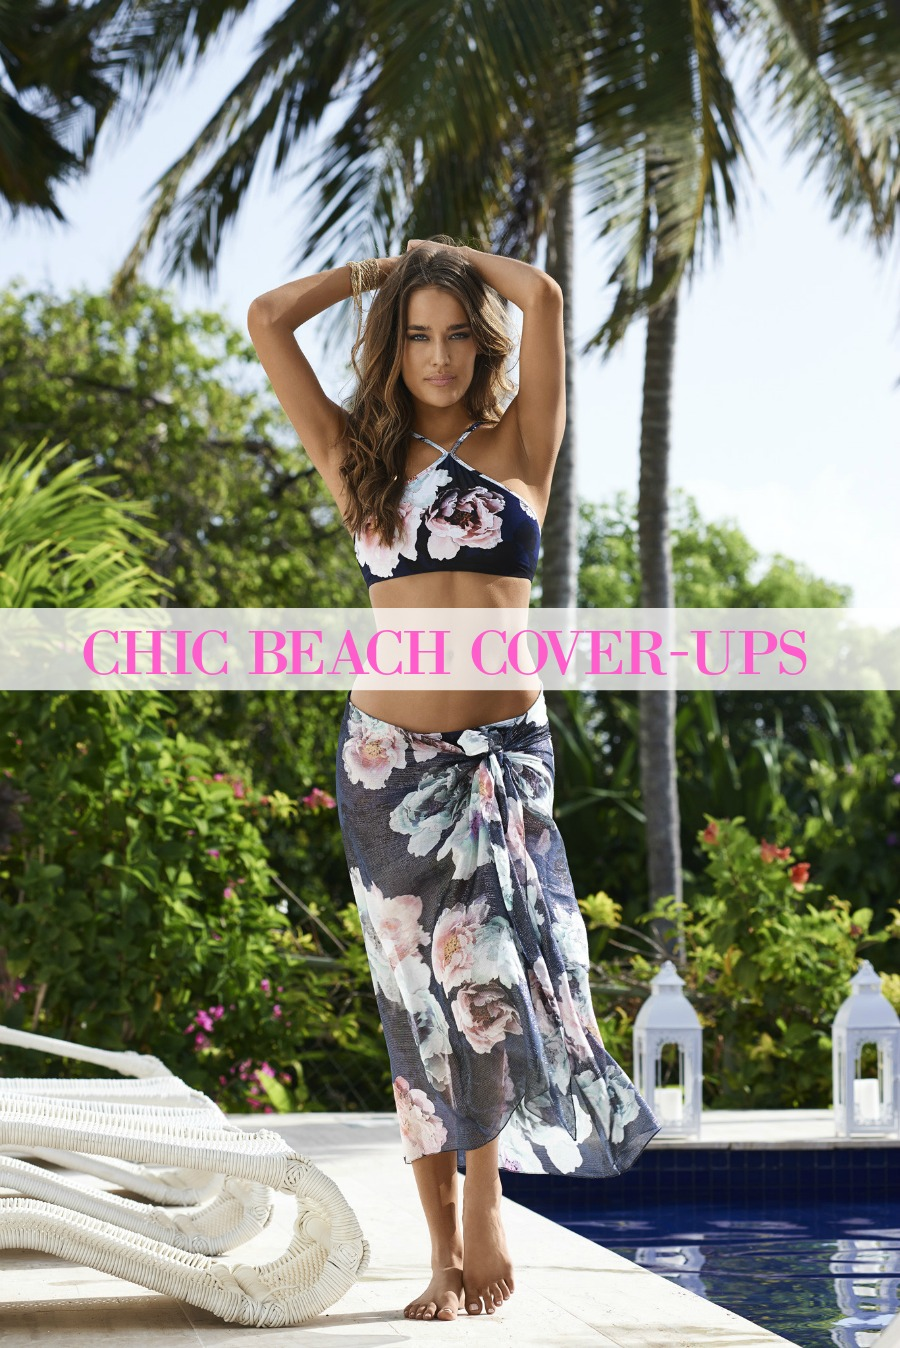 Fashion Book Cover Ups : Chic beach cover ups connecticut in style